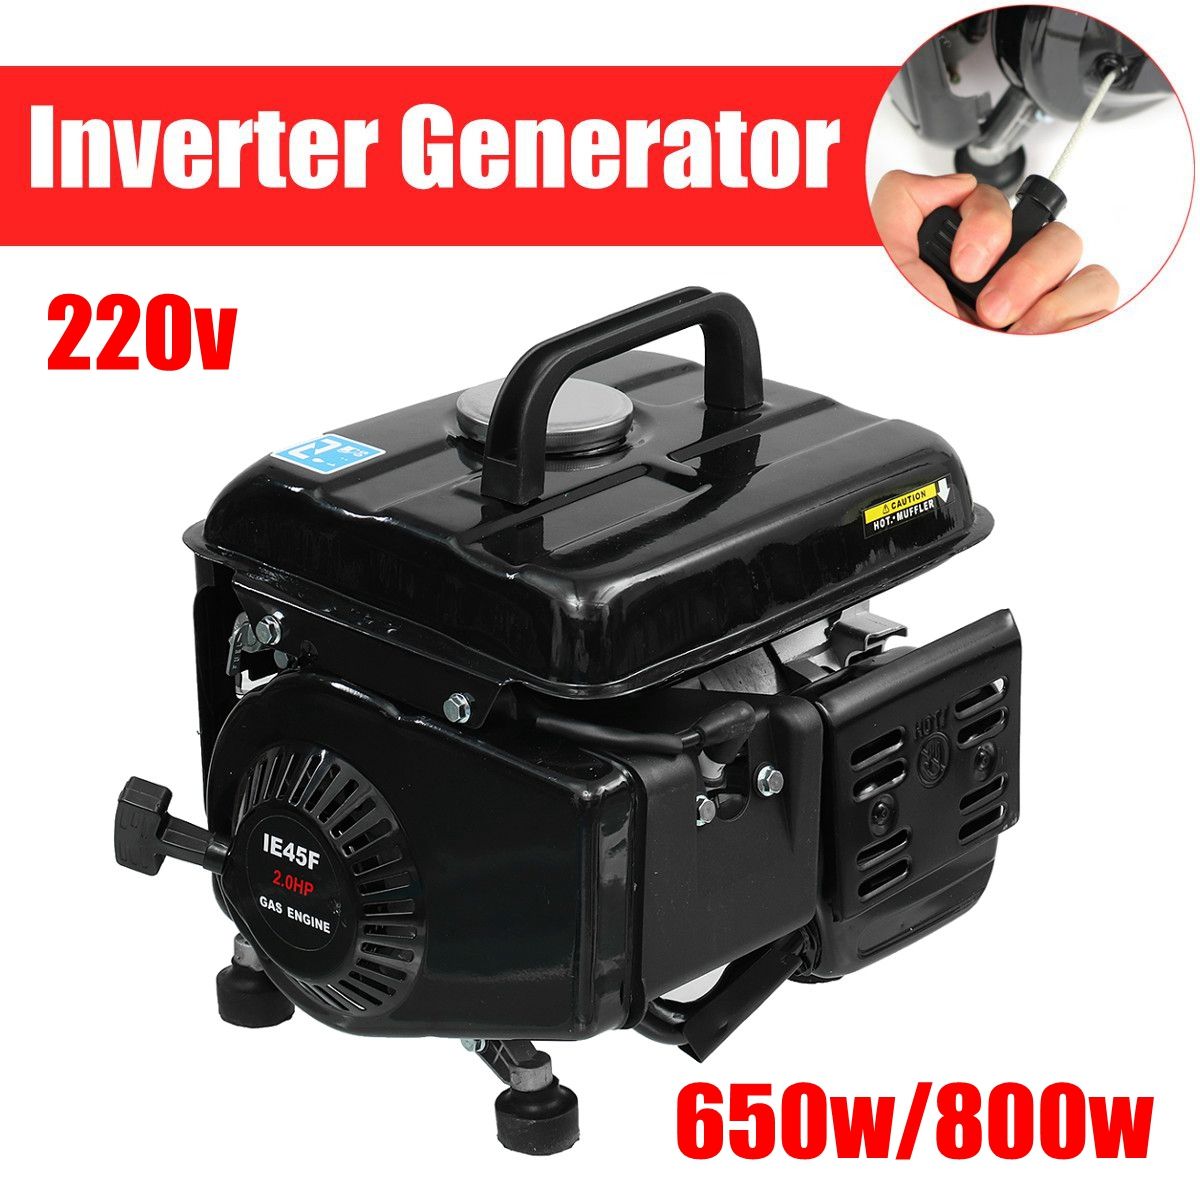 Portable 220V Generator Gas Gasoline Powered Electric Camping RV Quiet Inverter 650W 800W Peak-